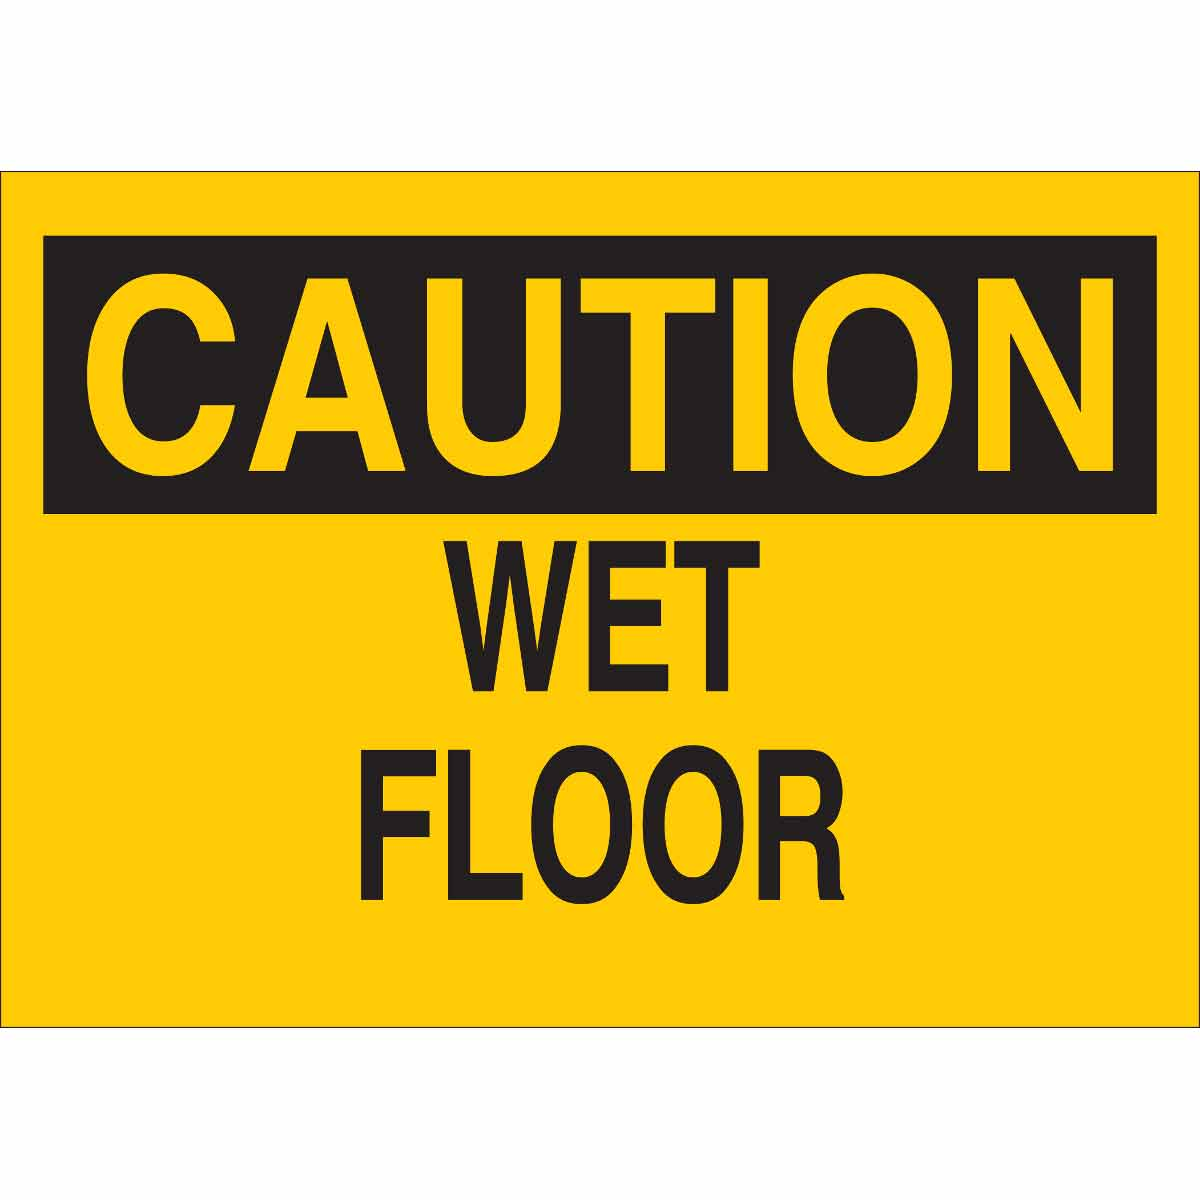 english products corrugated floor plastic sign or spanish stock caution wet sticker